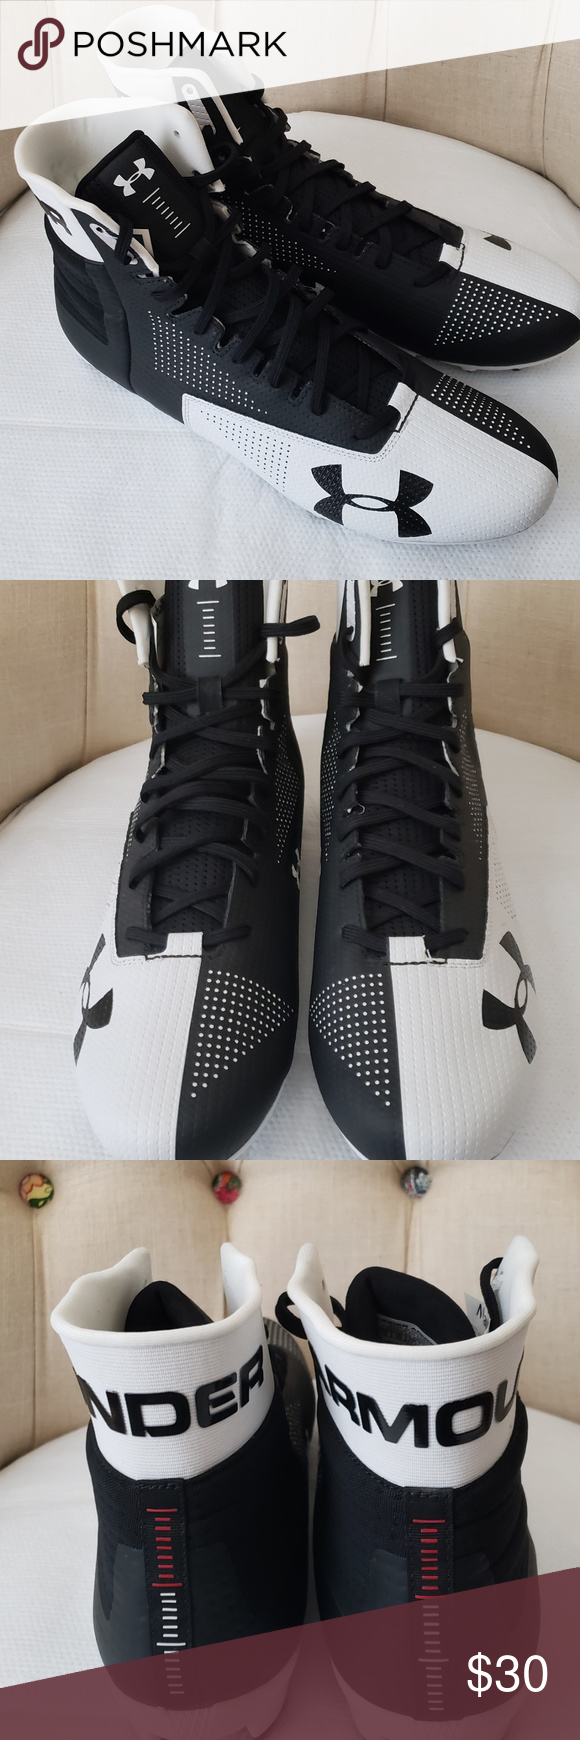 dc94e063e2e6 UNDER ARMOUR Renegade Football Cleats 13 MENS UNDER ARMOUR Renegade MC  Football Cleats 1292519-011 Size 13 New without box Under Armour Shoes  Athletic Shoes